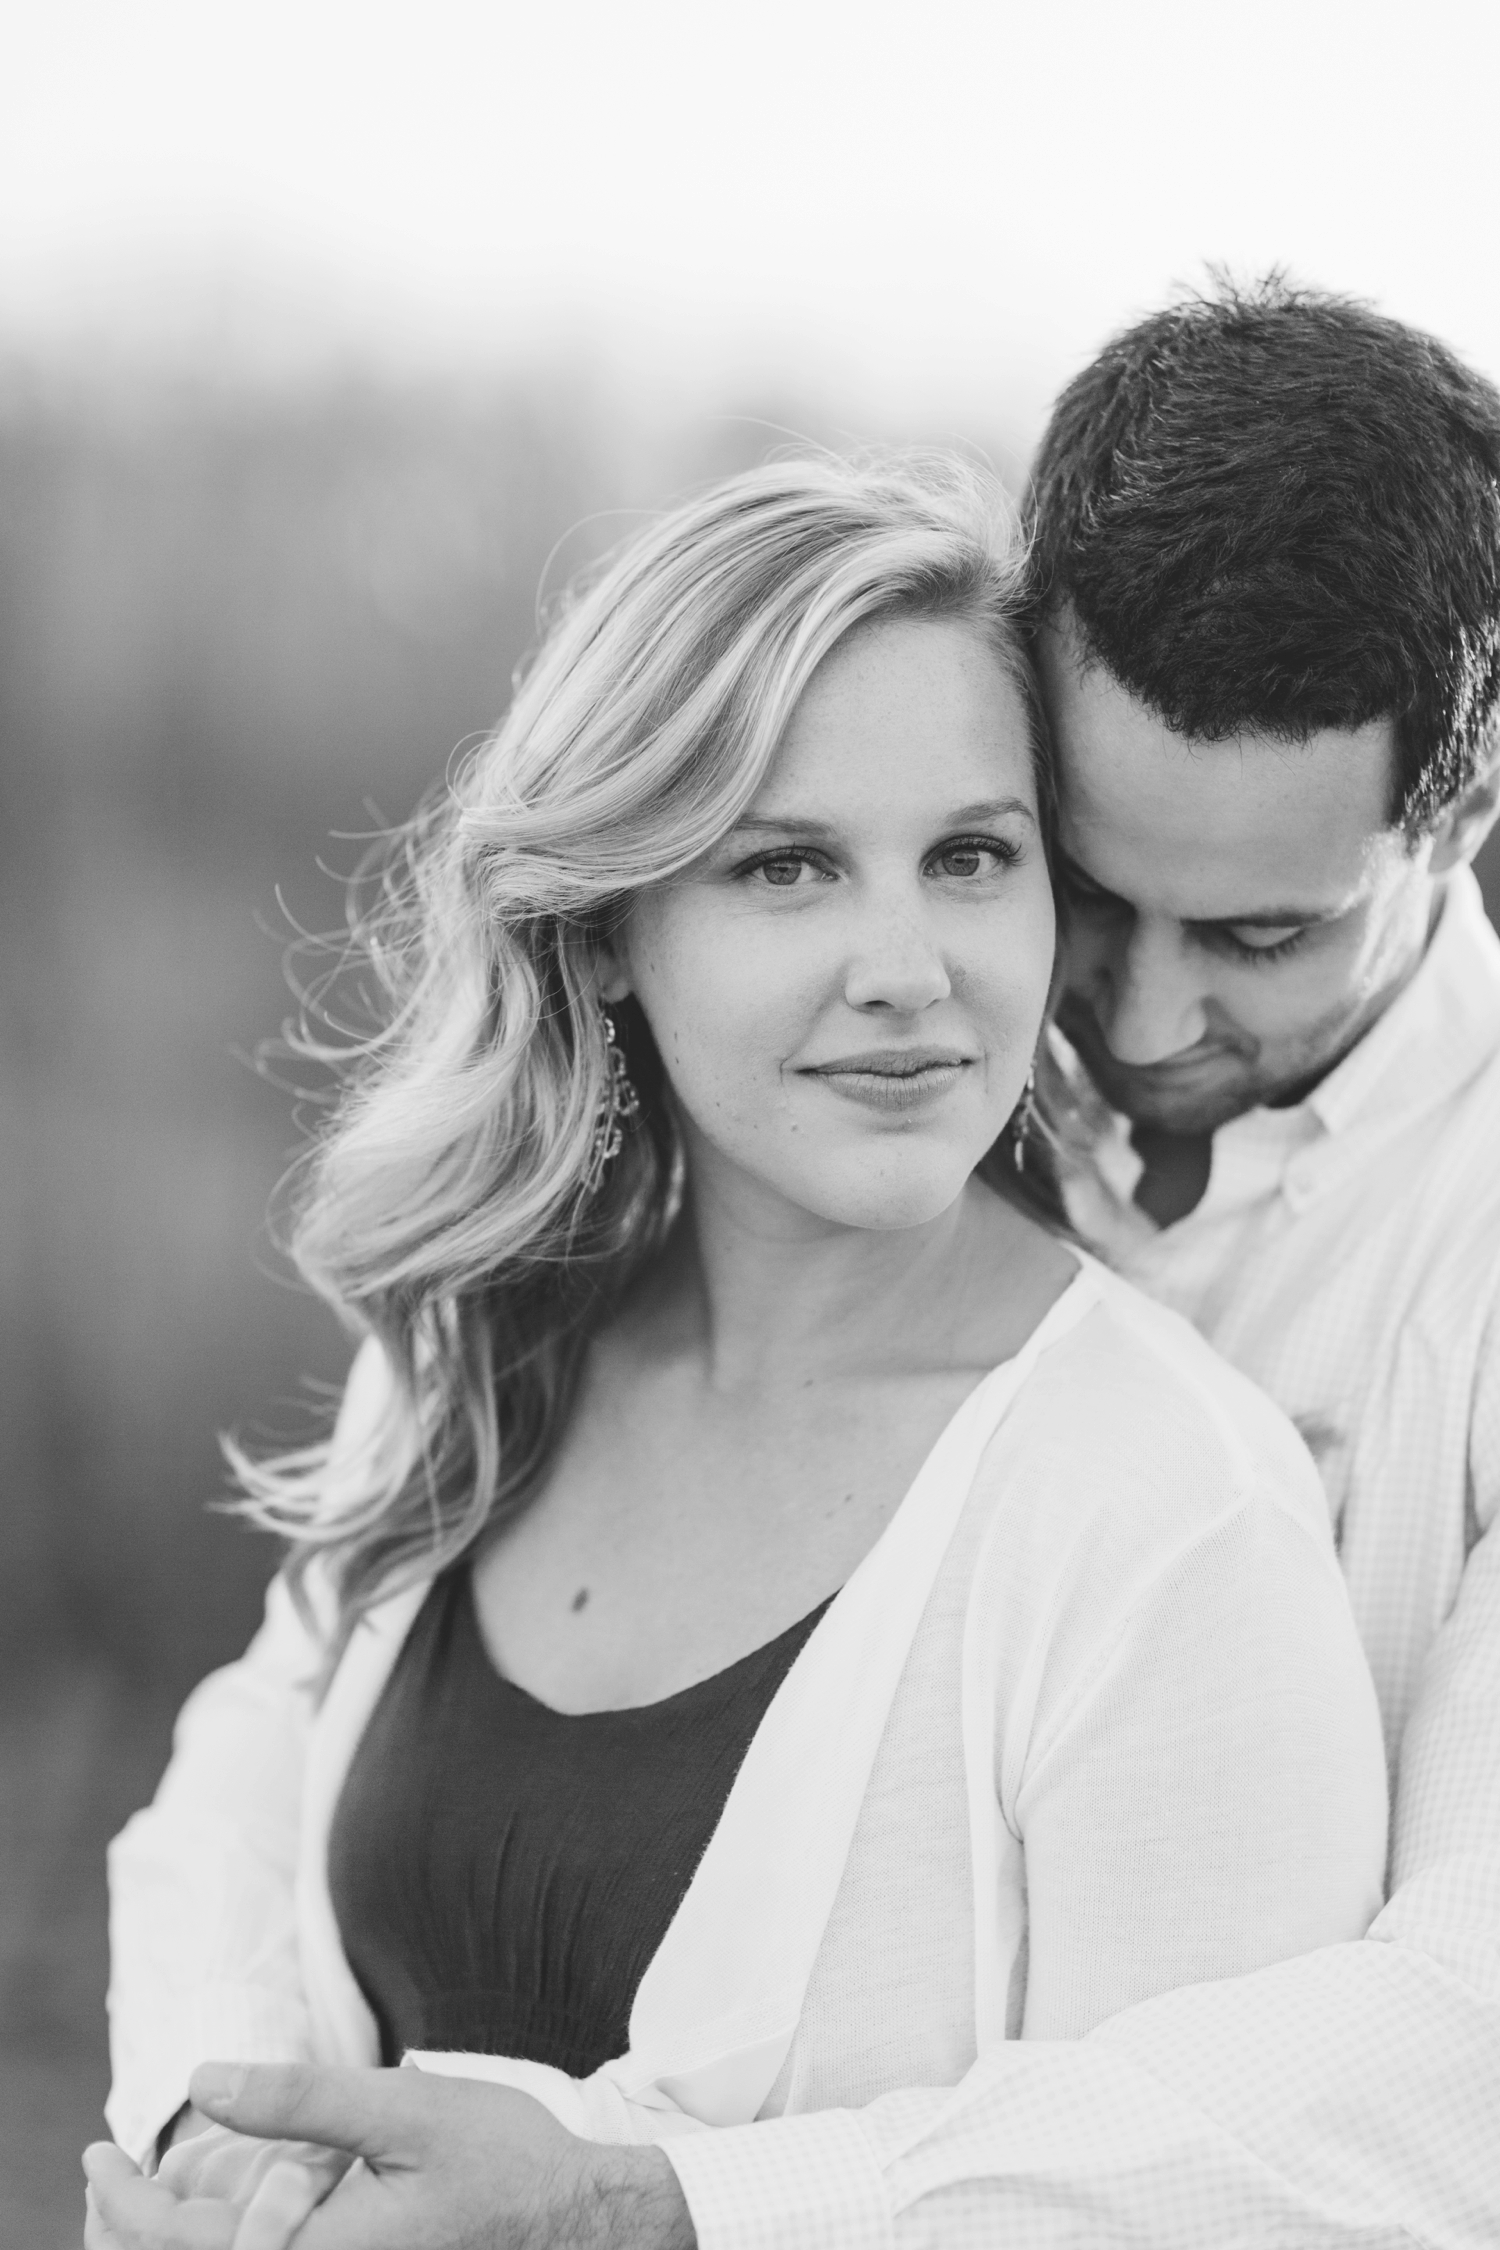 indianapolis_wedding_photographer_golden_hour_engagement_chloe_luka_photography_6138.jpg